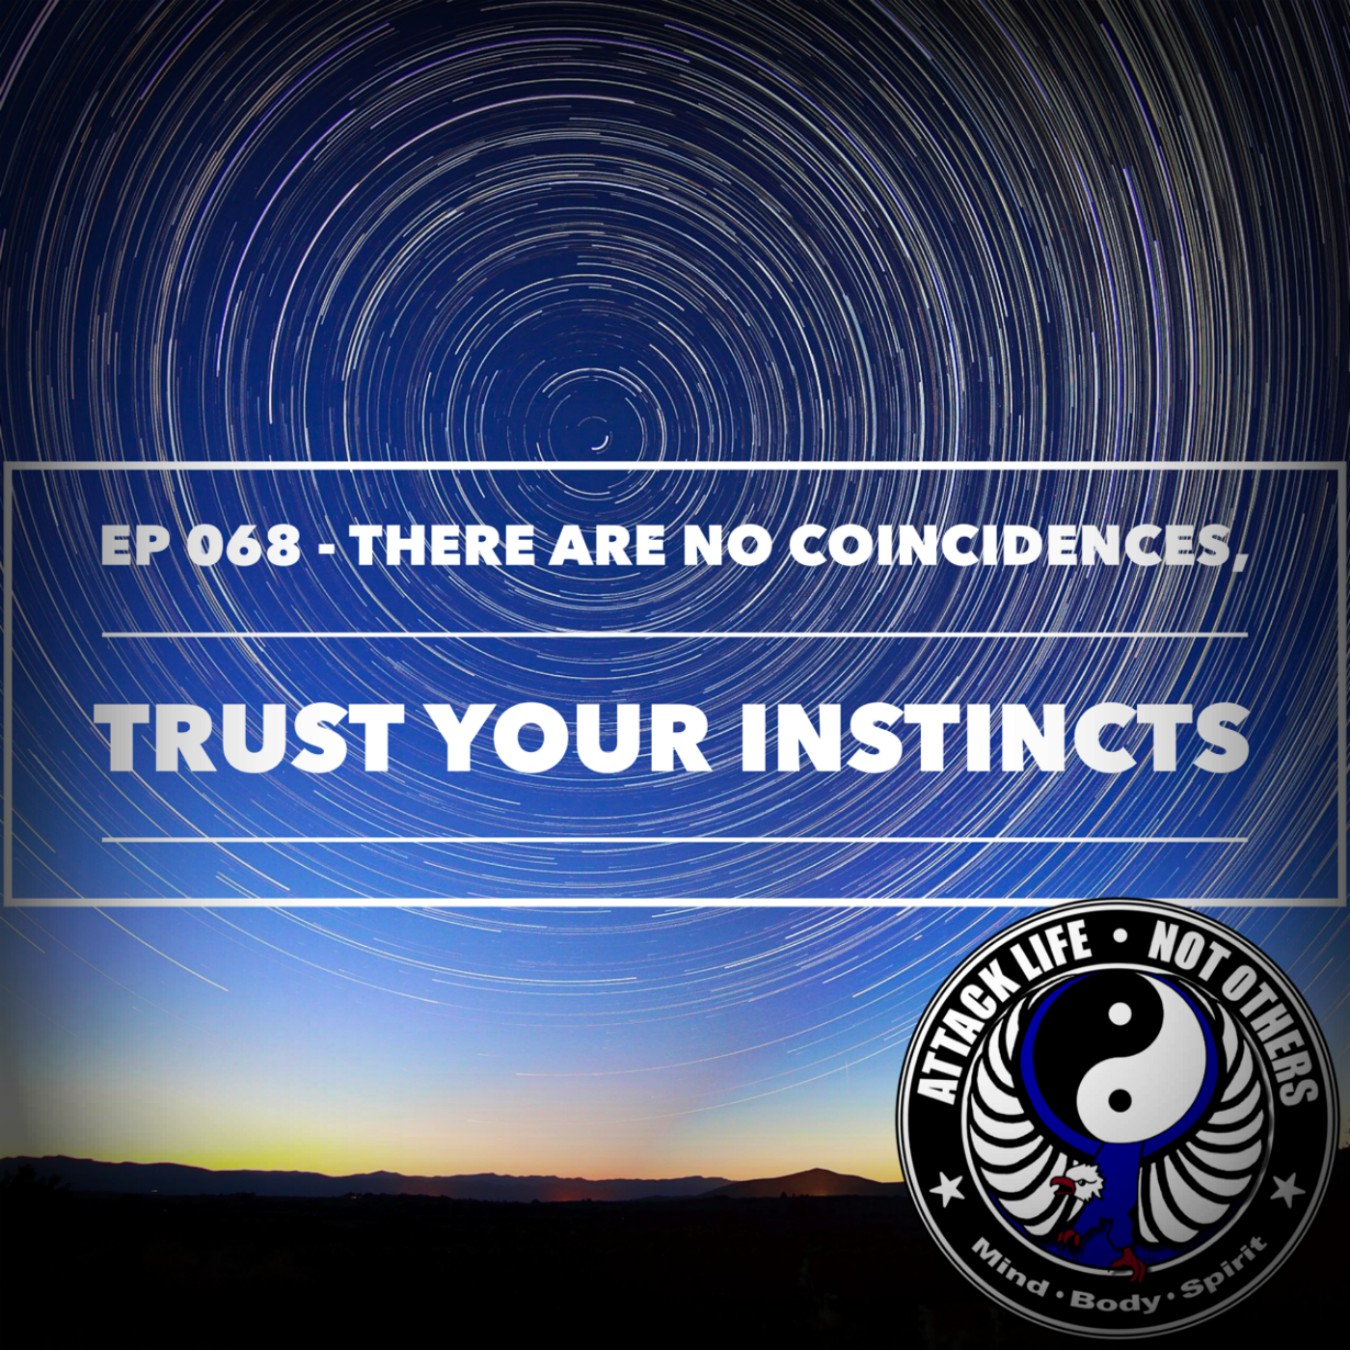 Ep 068 - There Are No Coincidences, Trust Your Instincts